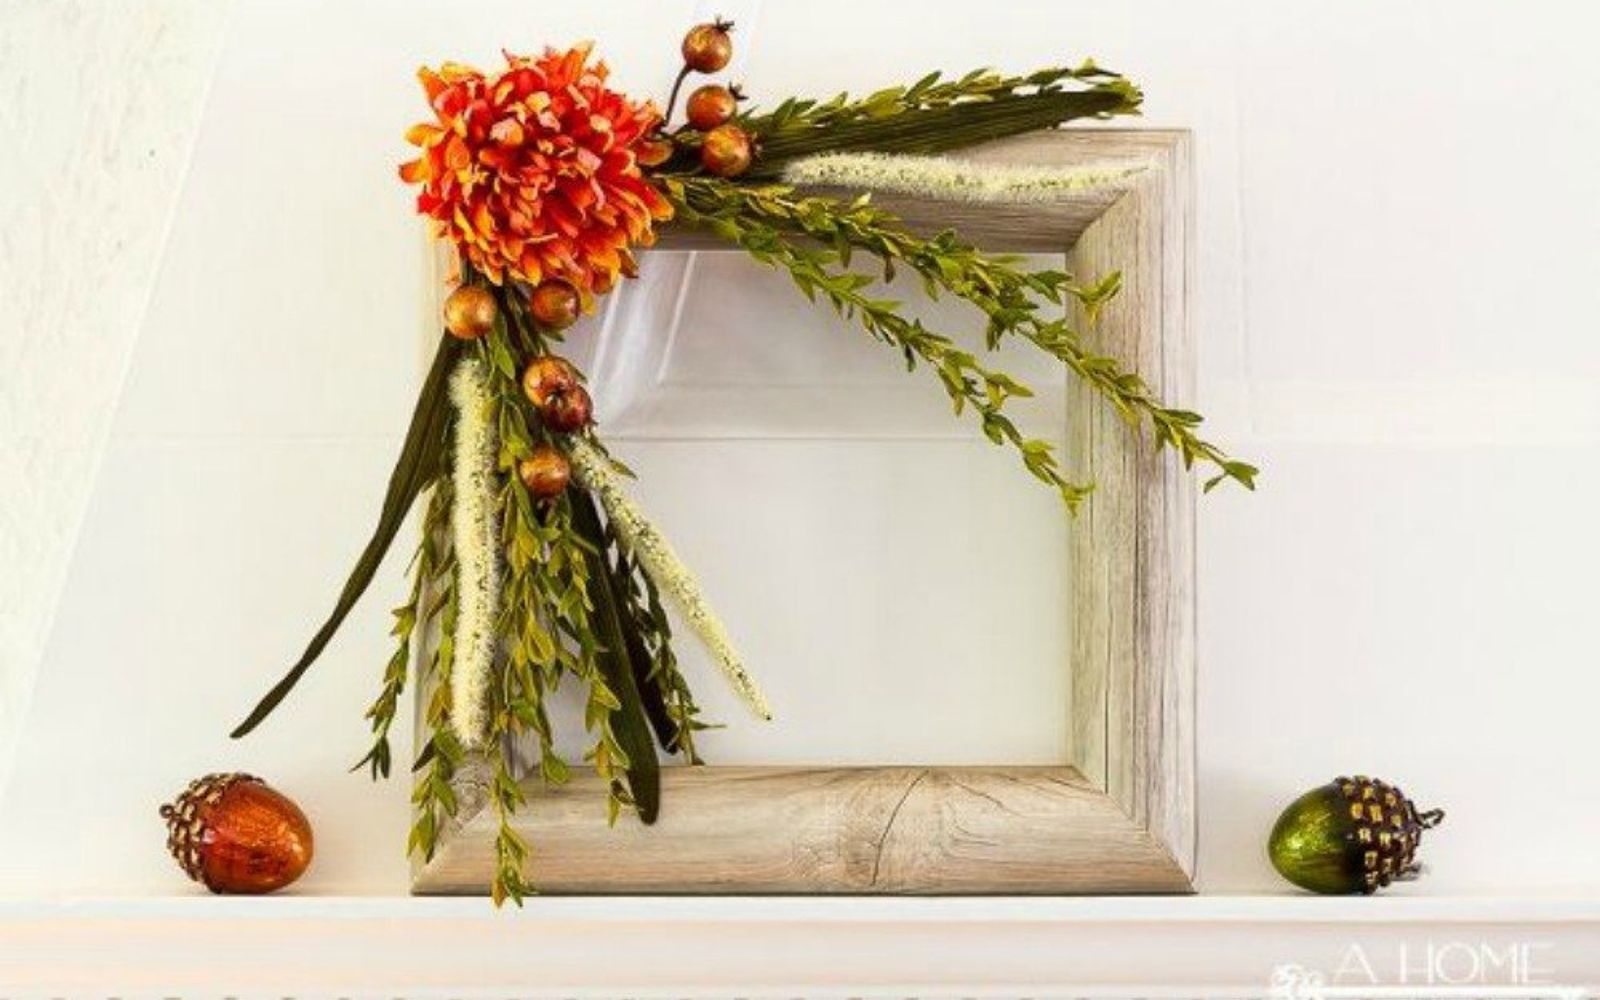 s 17 tricks to make a gorgeous wreath in half the time, crafts, wreaths, Or cut and cover it in contact paper